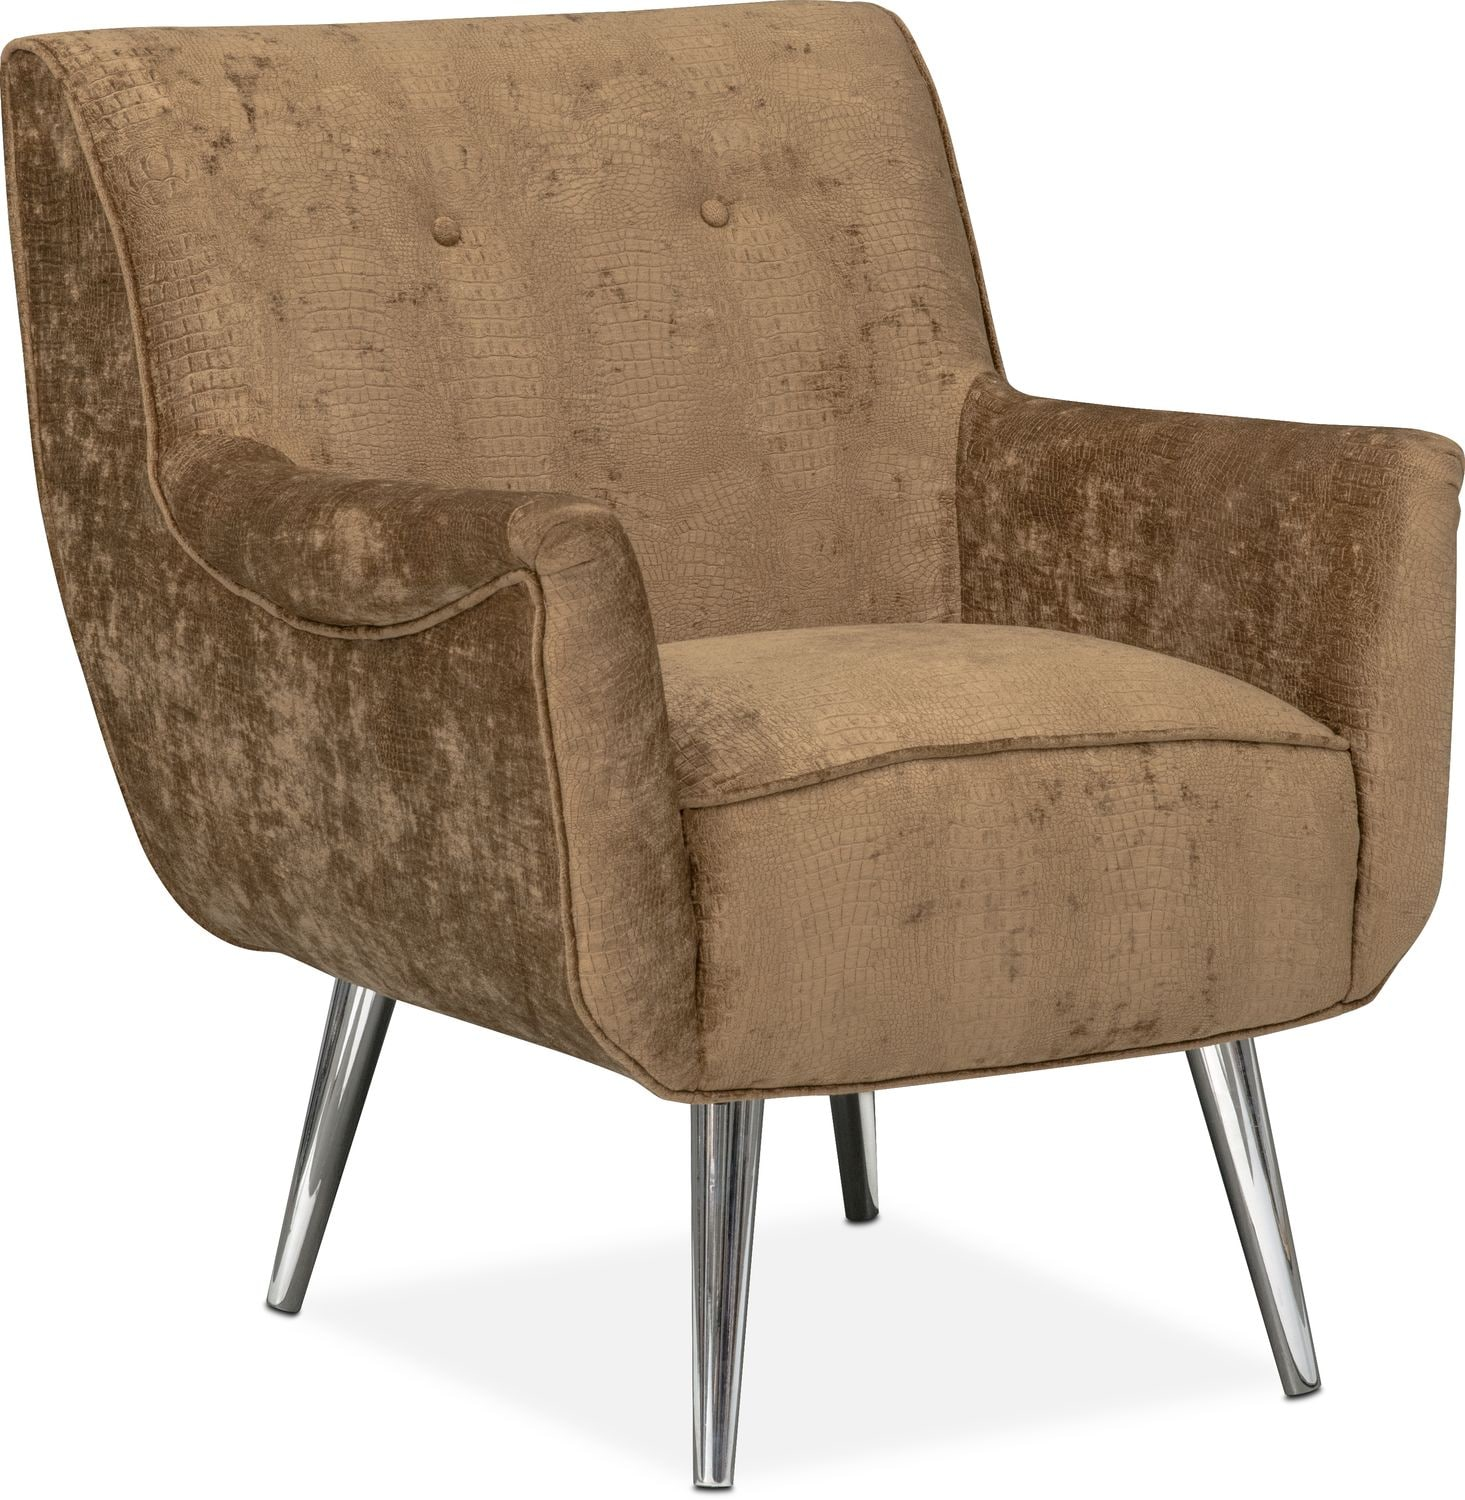 Chairs Chaises Living Room Seating American Signature Furniture